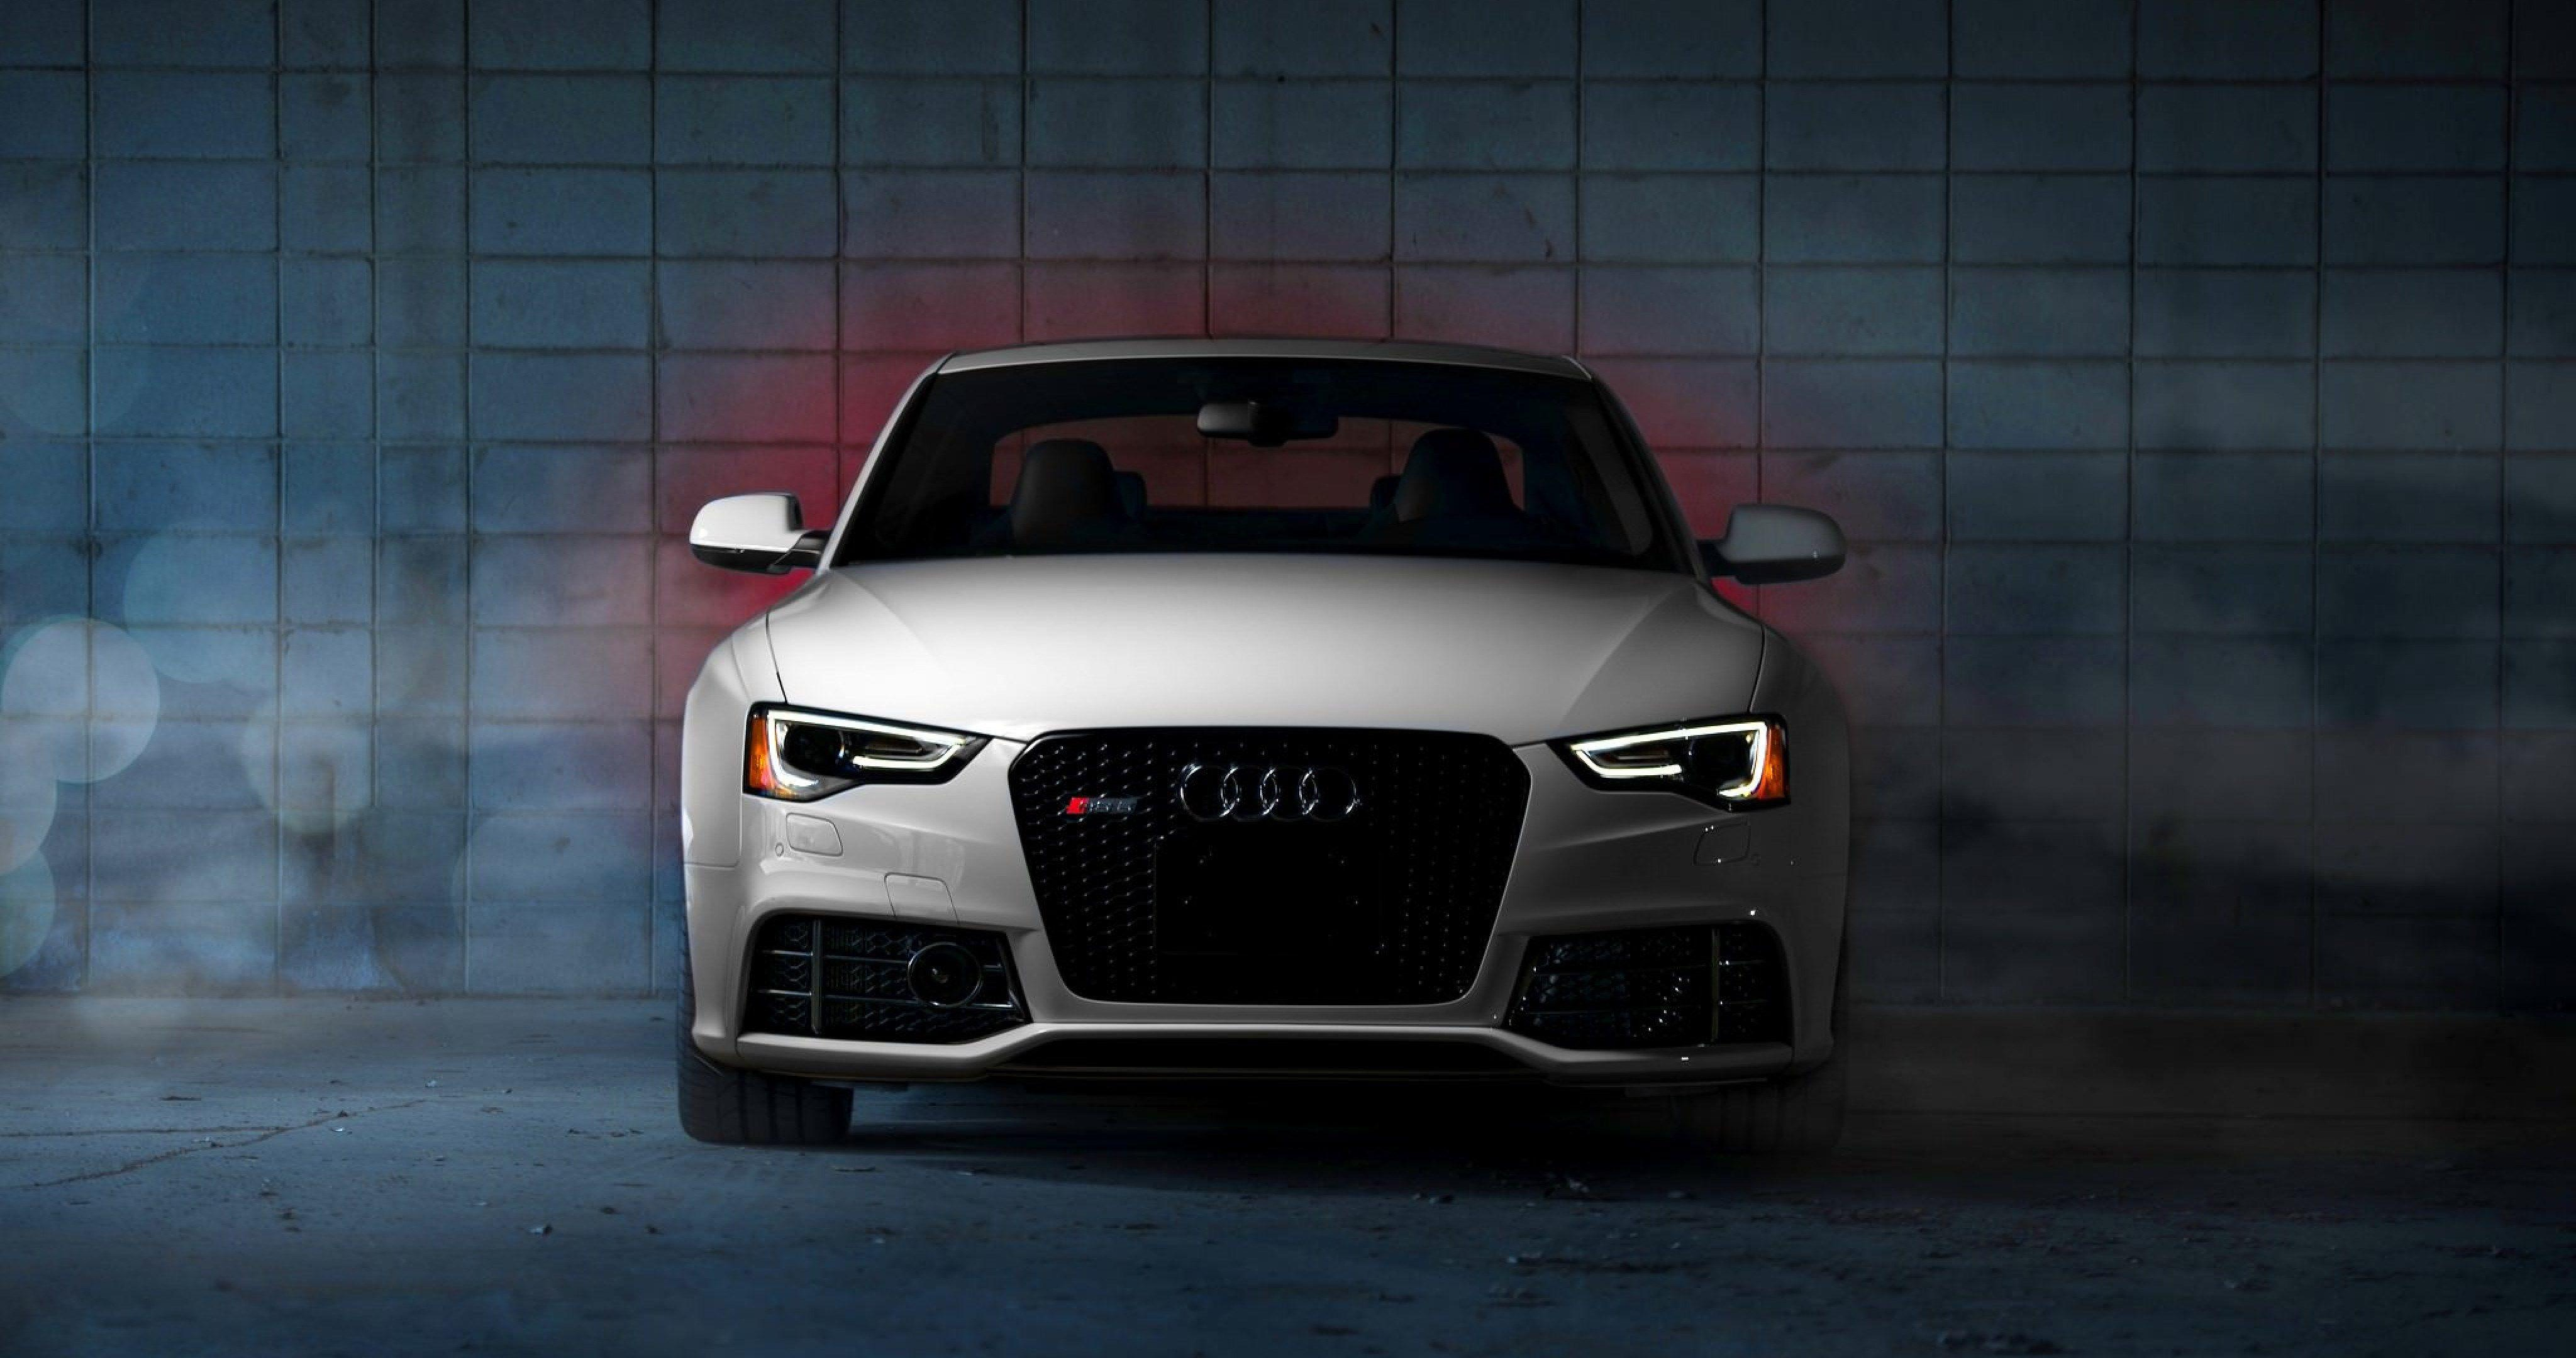 audi rs5 front 4k ultra hd wallpapers » High quality walls